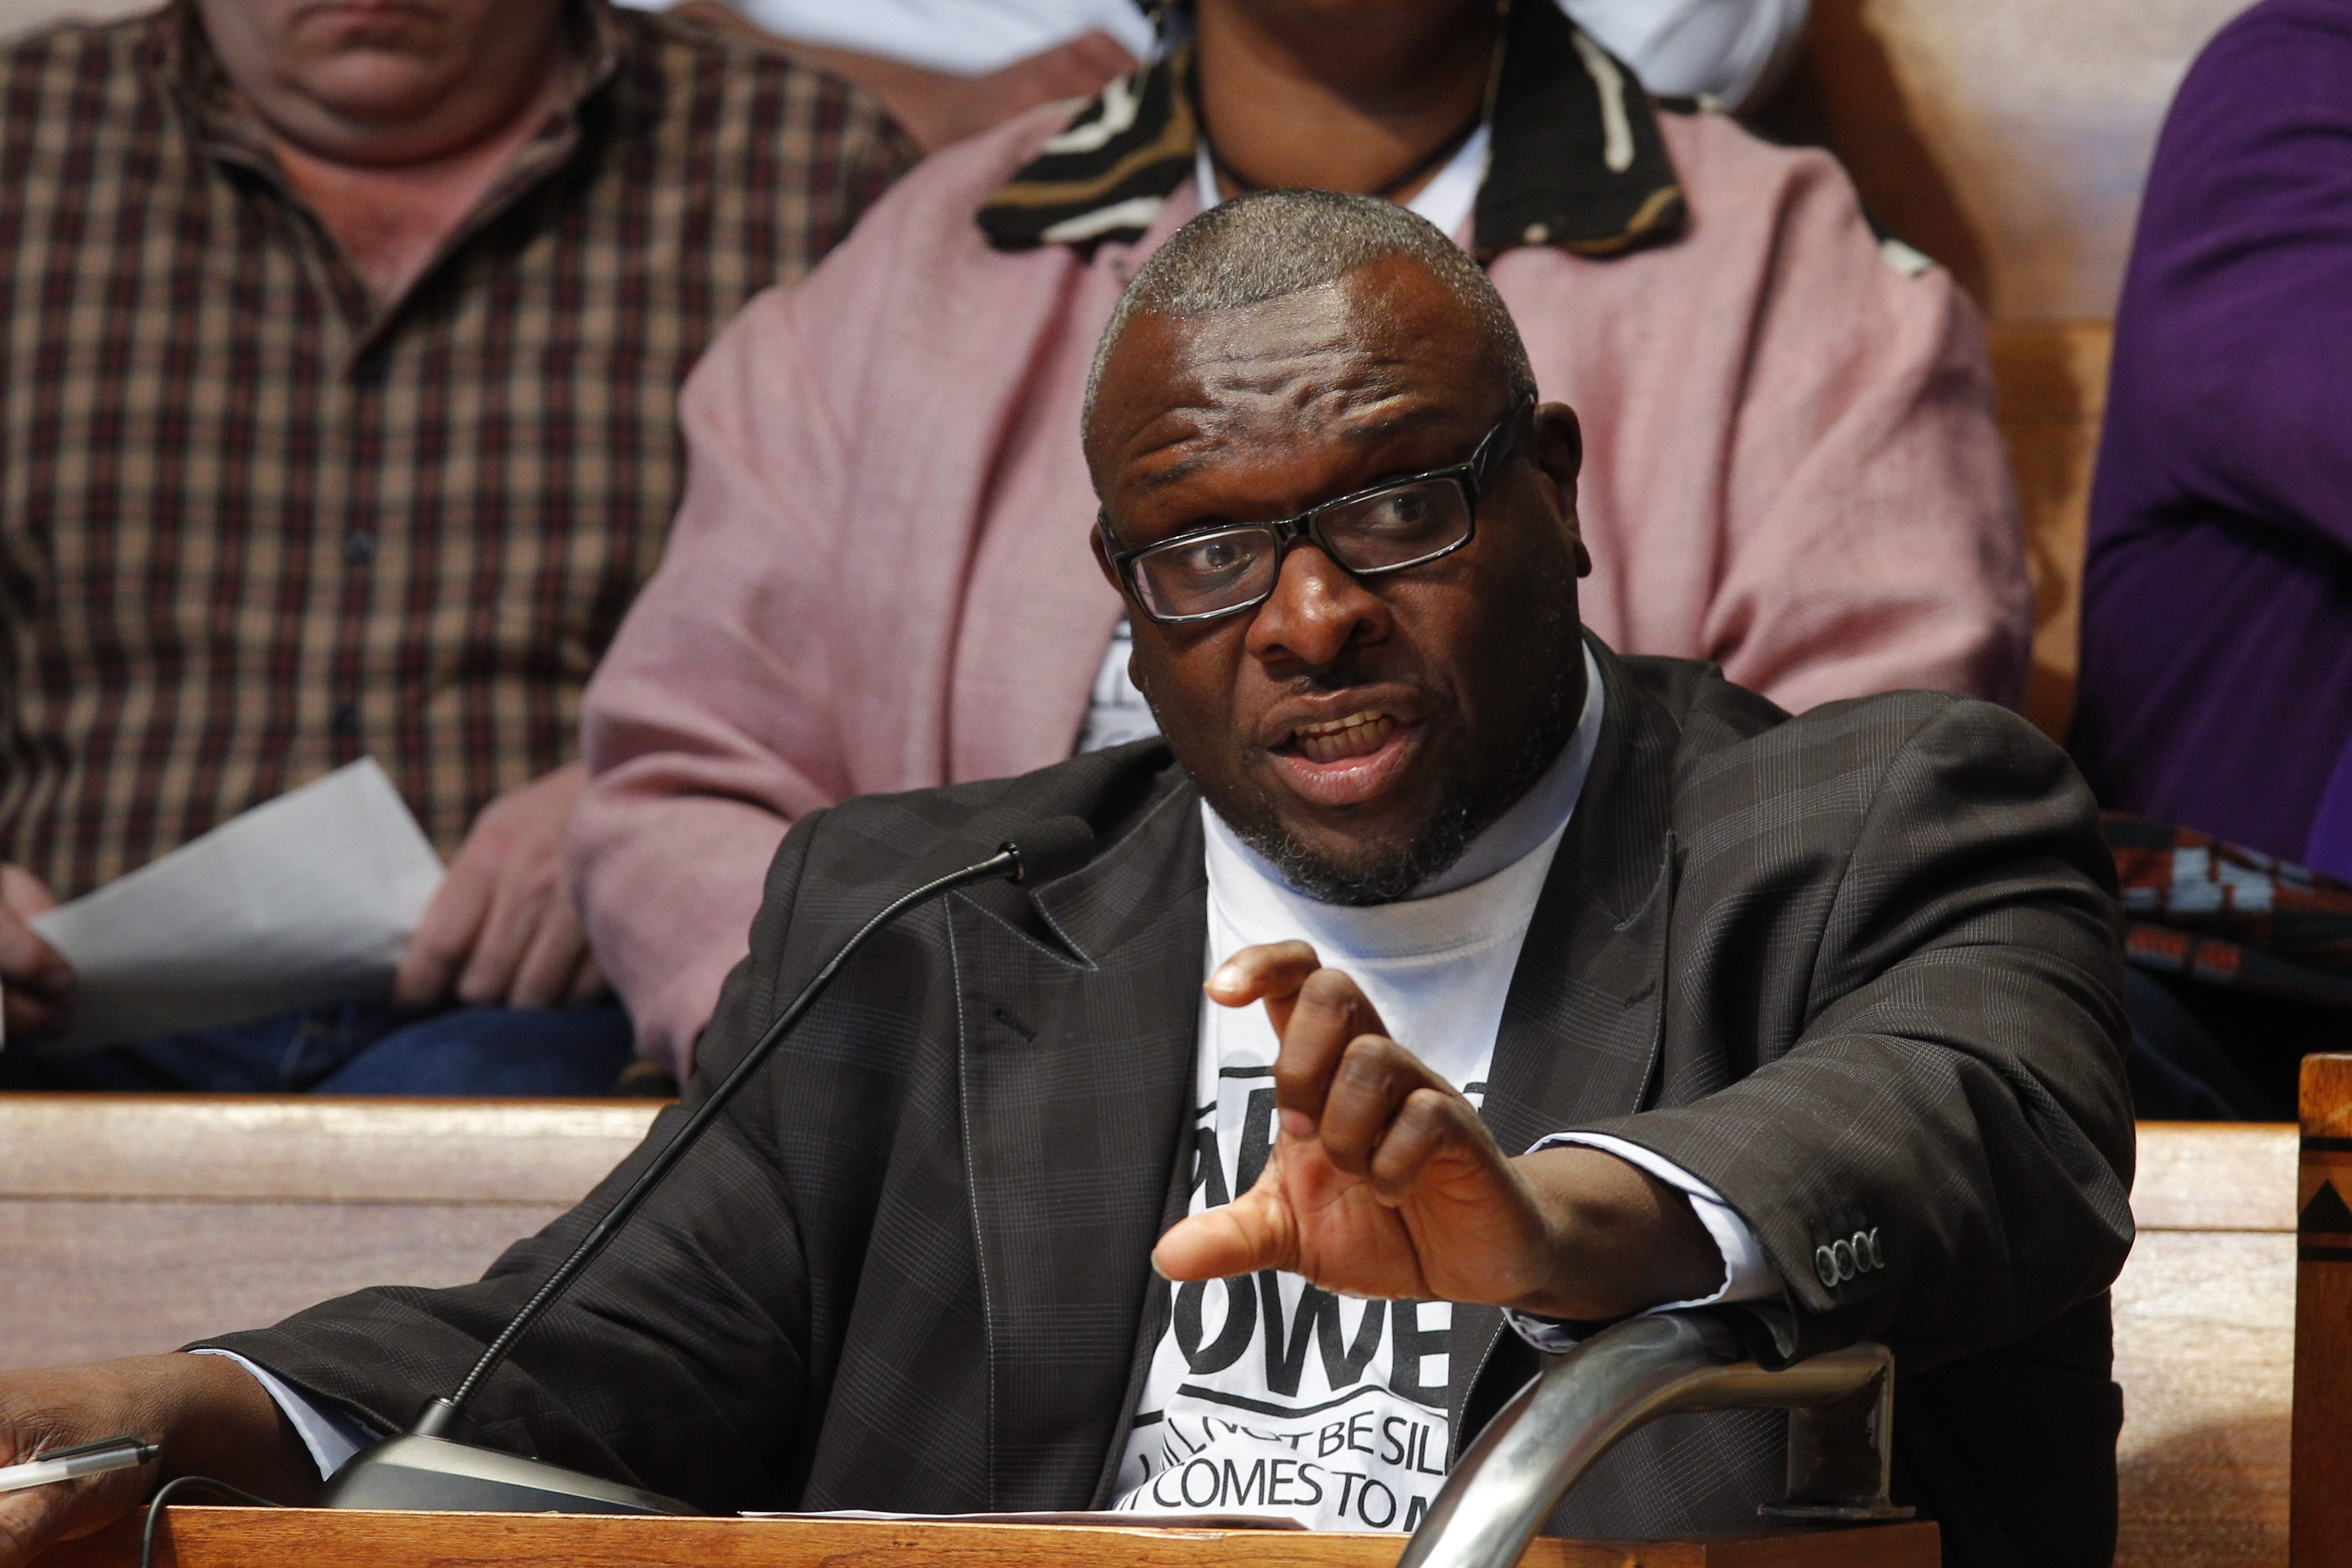 Samuel Radford III, president of the District Parent Coordinating Council, is one of the leaders advocating a return to neighborhood schools. (Buffalo News file photo)